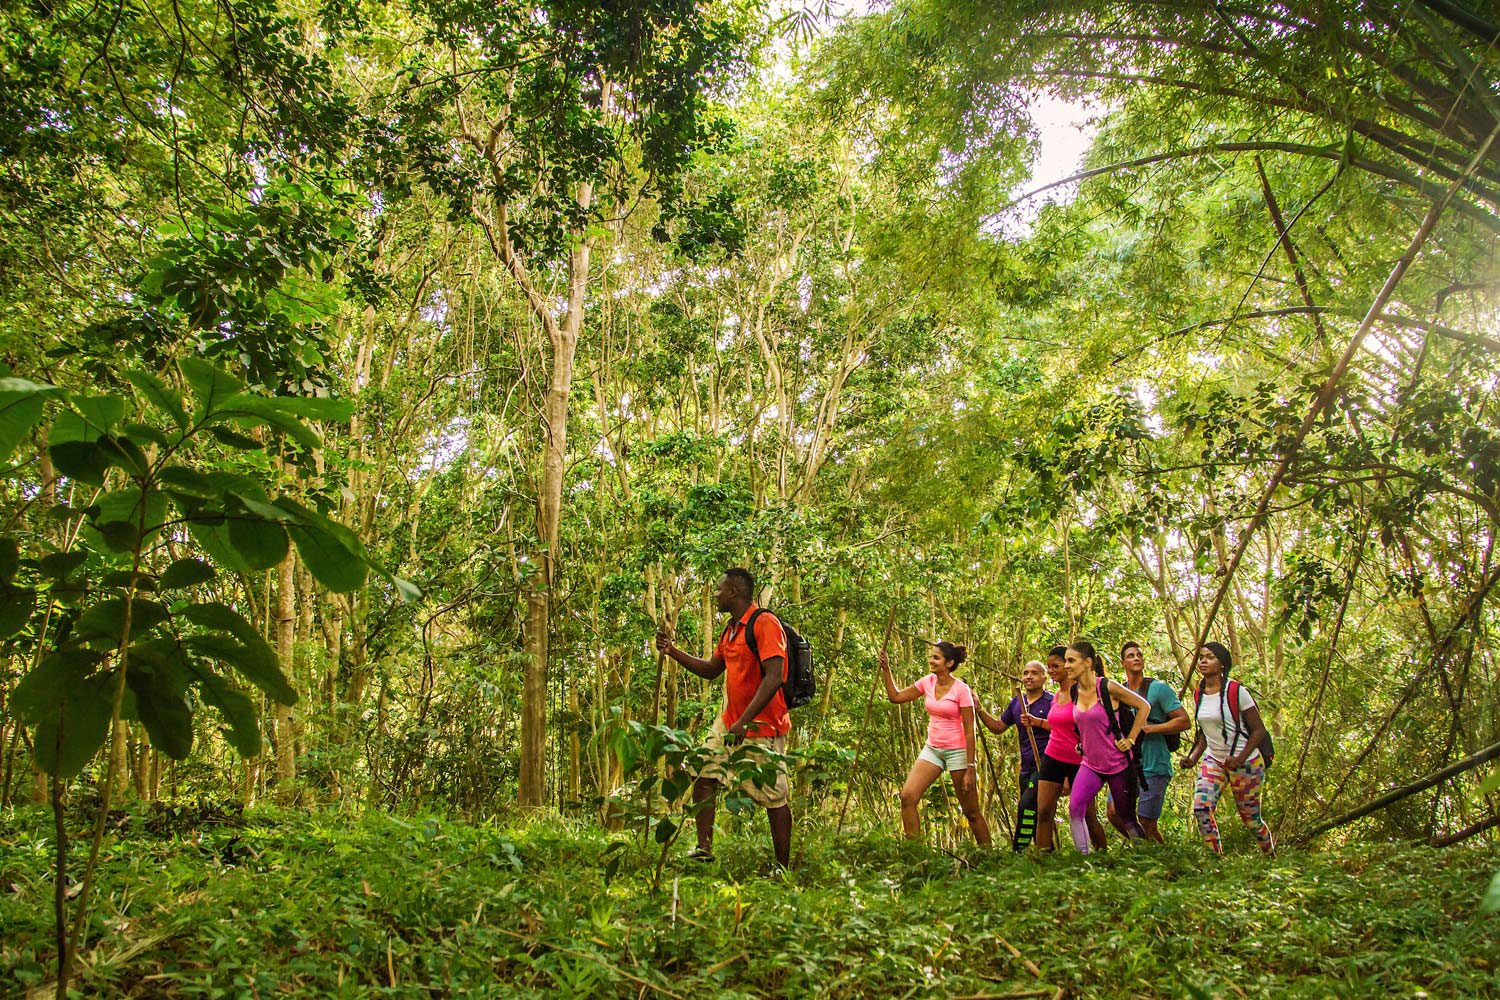 Exploring a stretch of forest in the interior of Barbados. Photo courtesy Barbados Tourism Marketing Inc